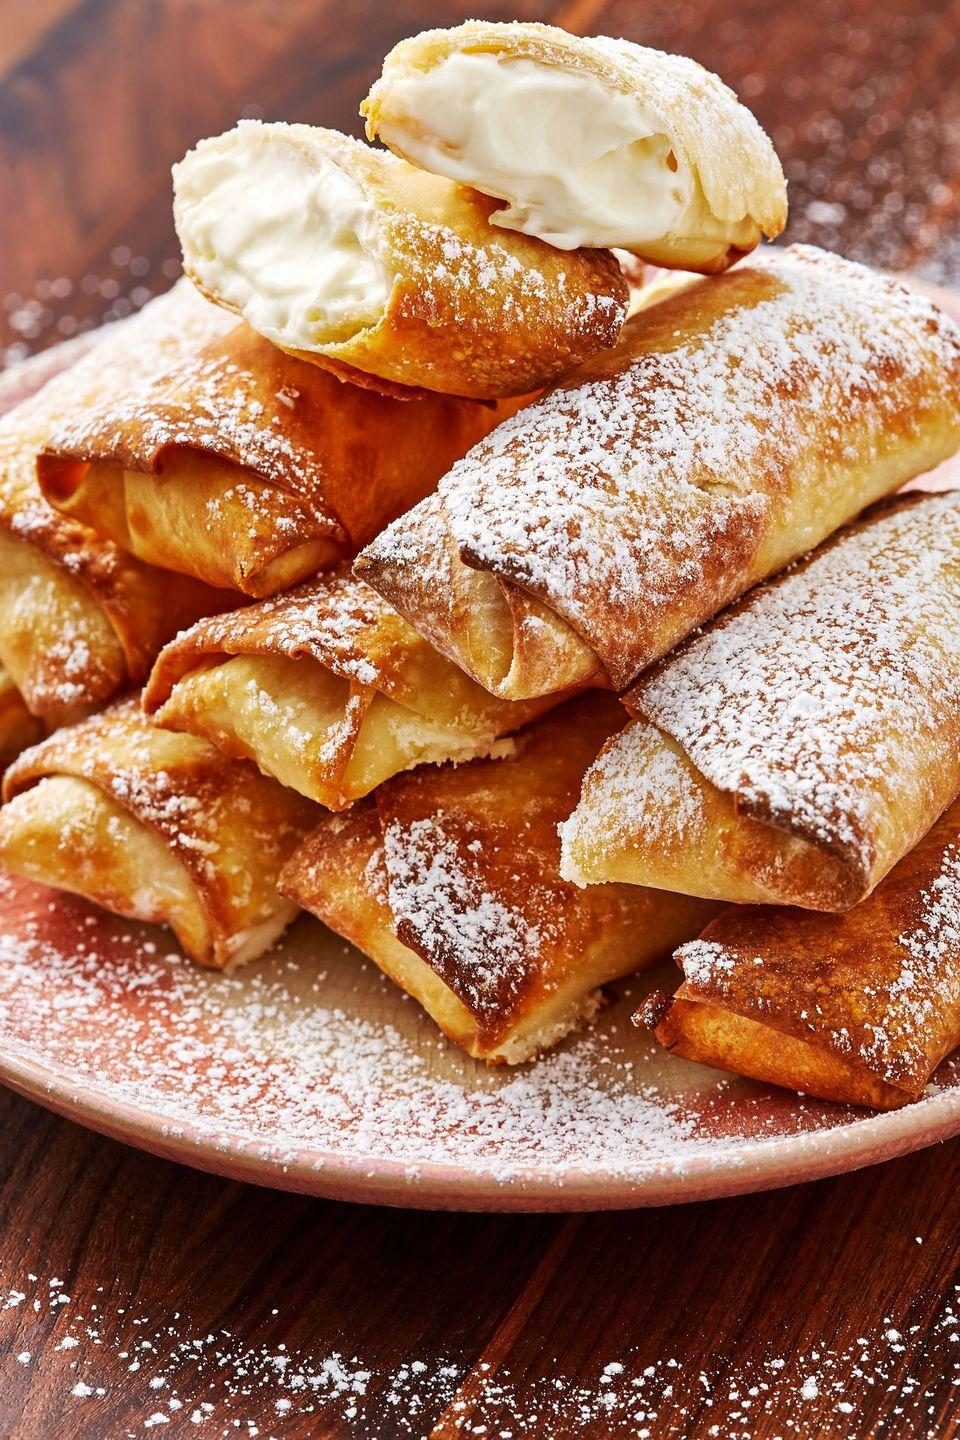 """<p>Wanna make your cheesecake even better? Make them egg rolls. </p><p>Get the recipe from <a href=""""https://www.delish.com/cooking/recipe-ideas/recipes/a57247/cheesecake-egg-rolls-recipe/"""" rel=""""nofollow noopener"""" target=""""_blank"""" data-ylk=""""slk:Delish"""" class=""""link rapid-noclick-resp"""">Delish</a>.</p>"""